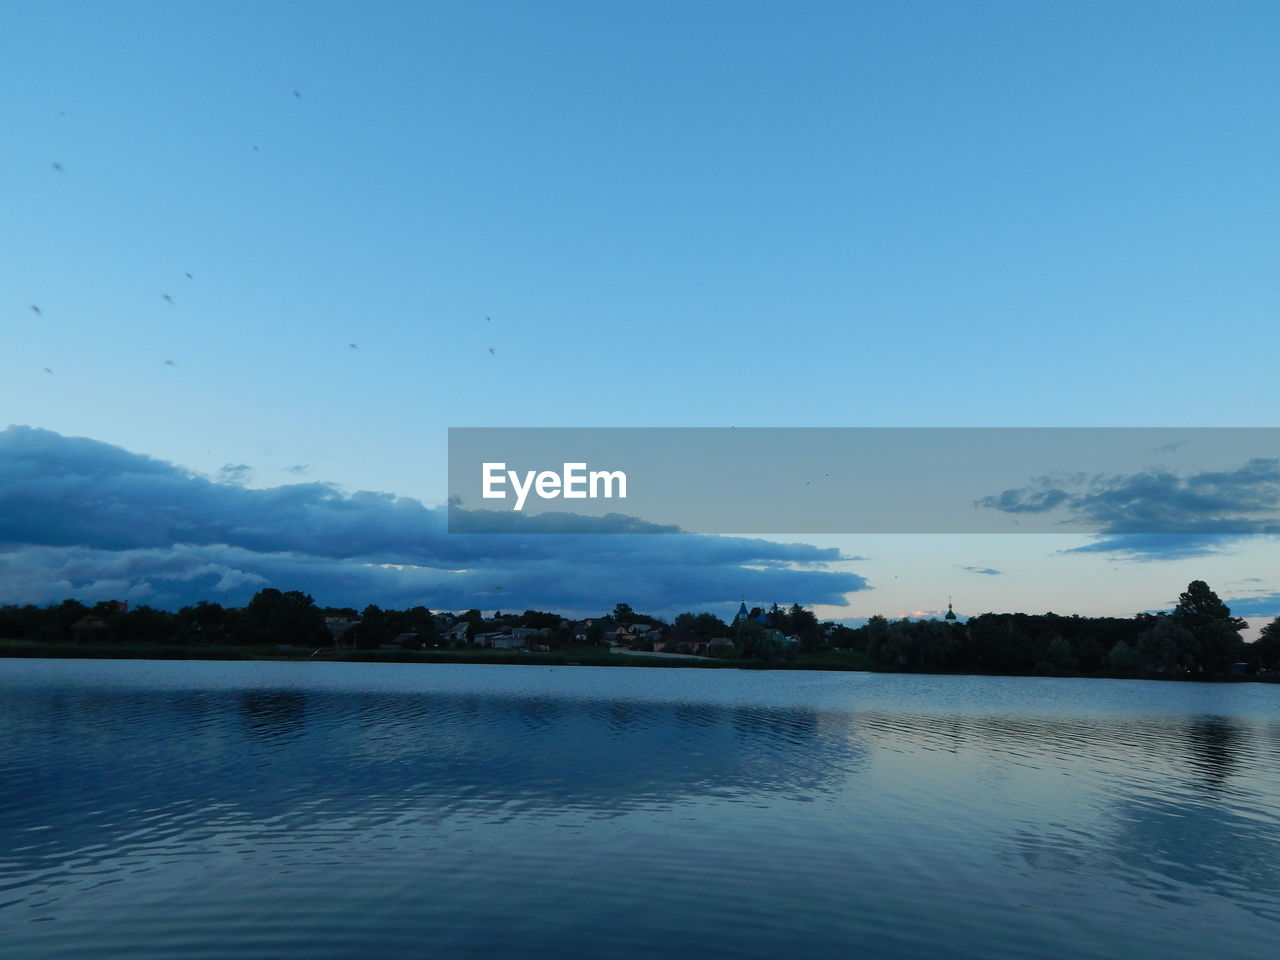 sky, water, tranquil scene, beauty in nature, tranquility, tree, scenics - nature, waterfront, lake, plant, blue, nature, reflection, no people, non-urban scene, idyllic, copy space, cloud - sky, outdoors